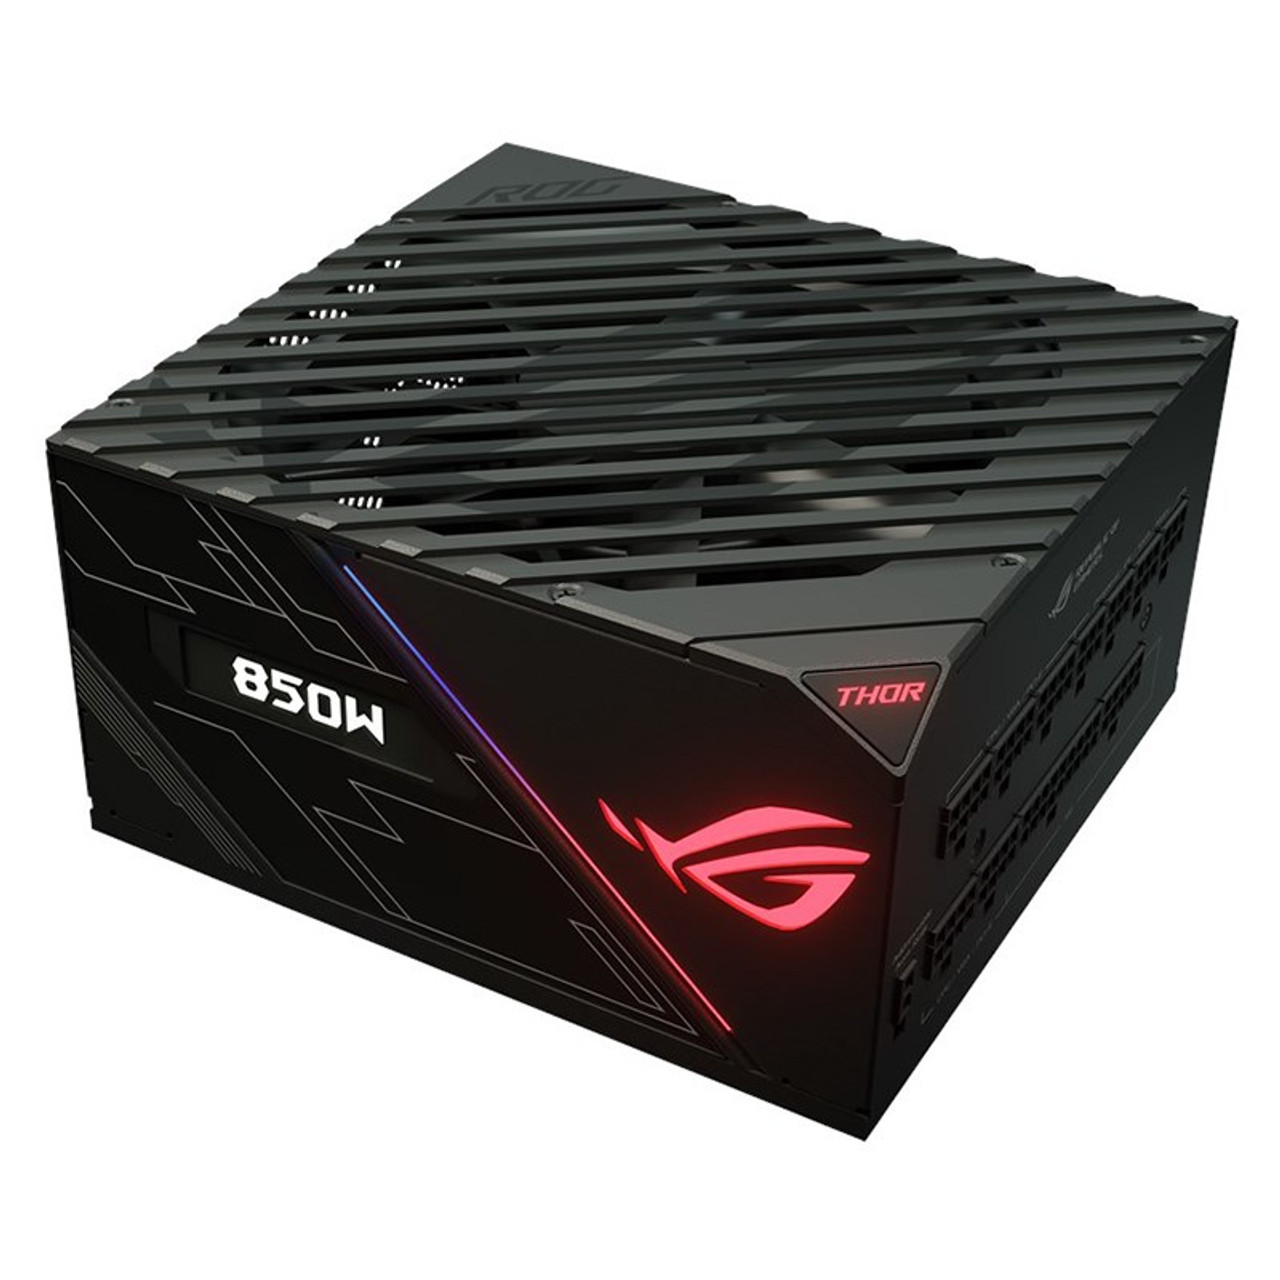 Product image for Asus ROG Thor 850W Platinum PSU | CX Computer Superstore